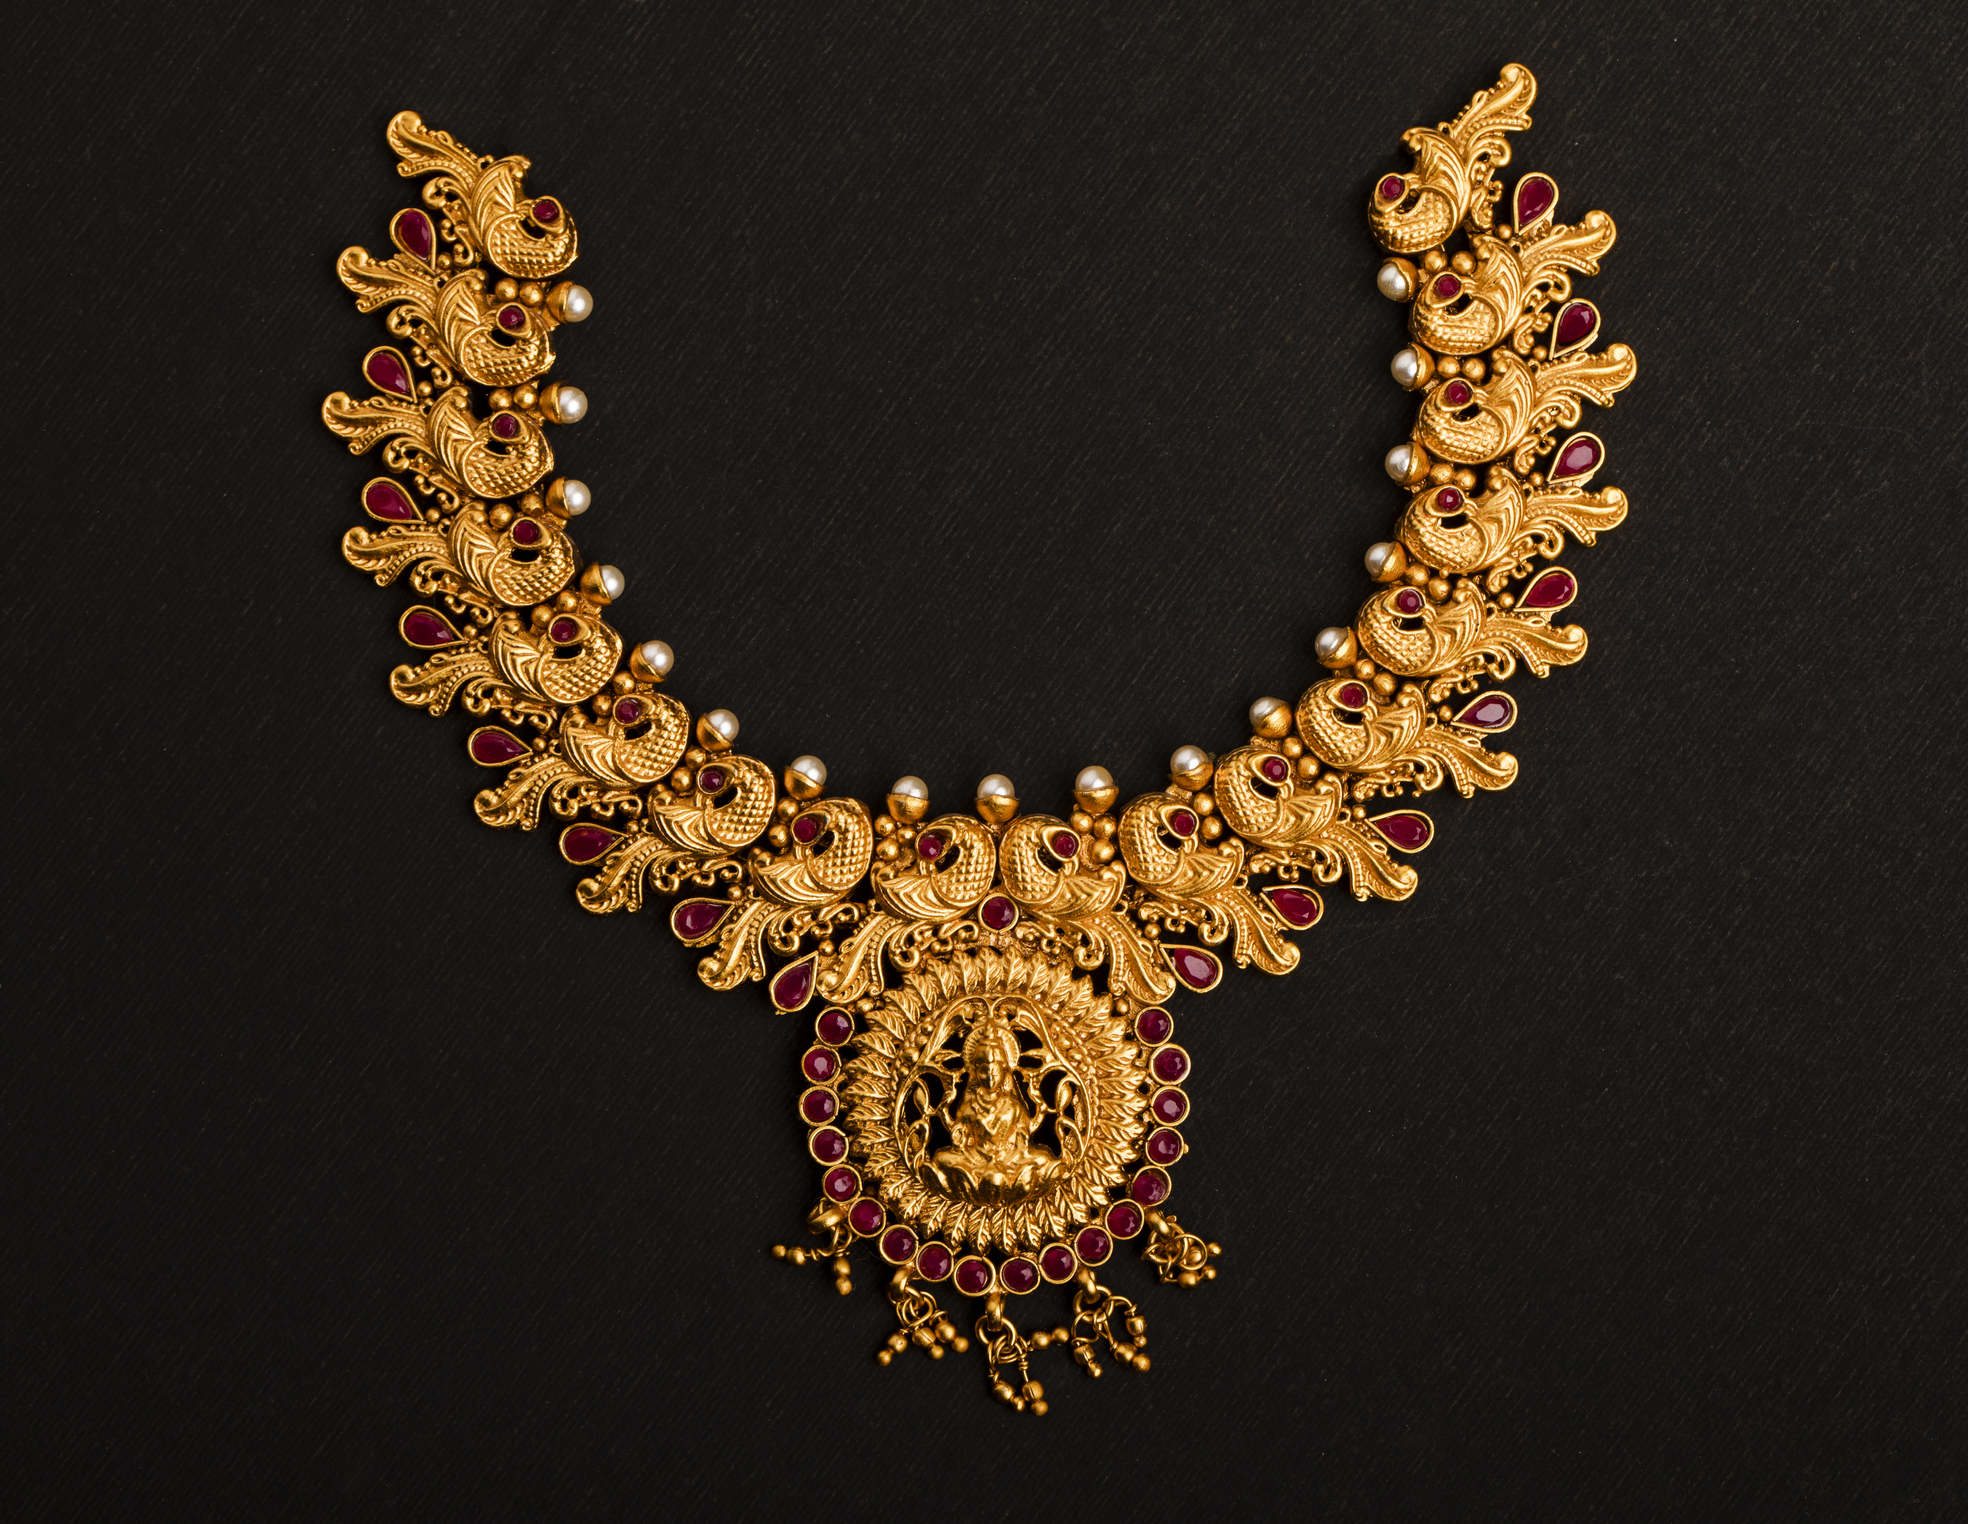 Indian-traditional-wedding-Jewelry-934717792_1971x1526.jpeg